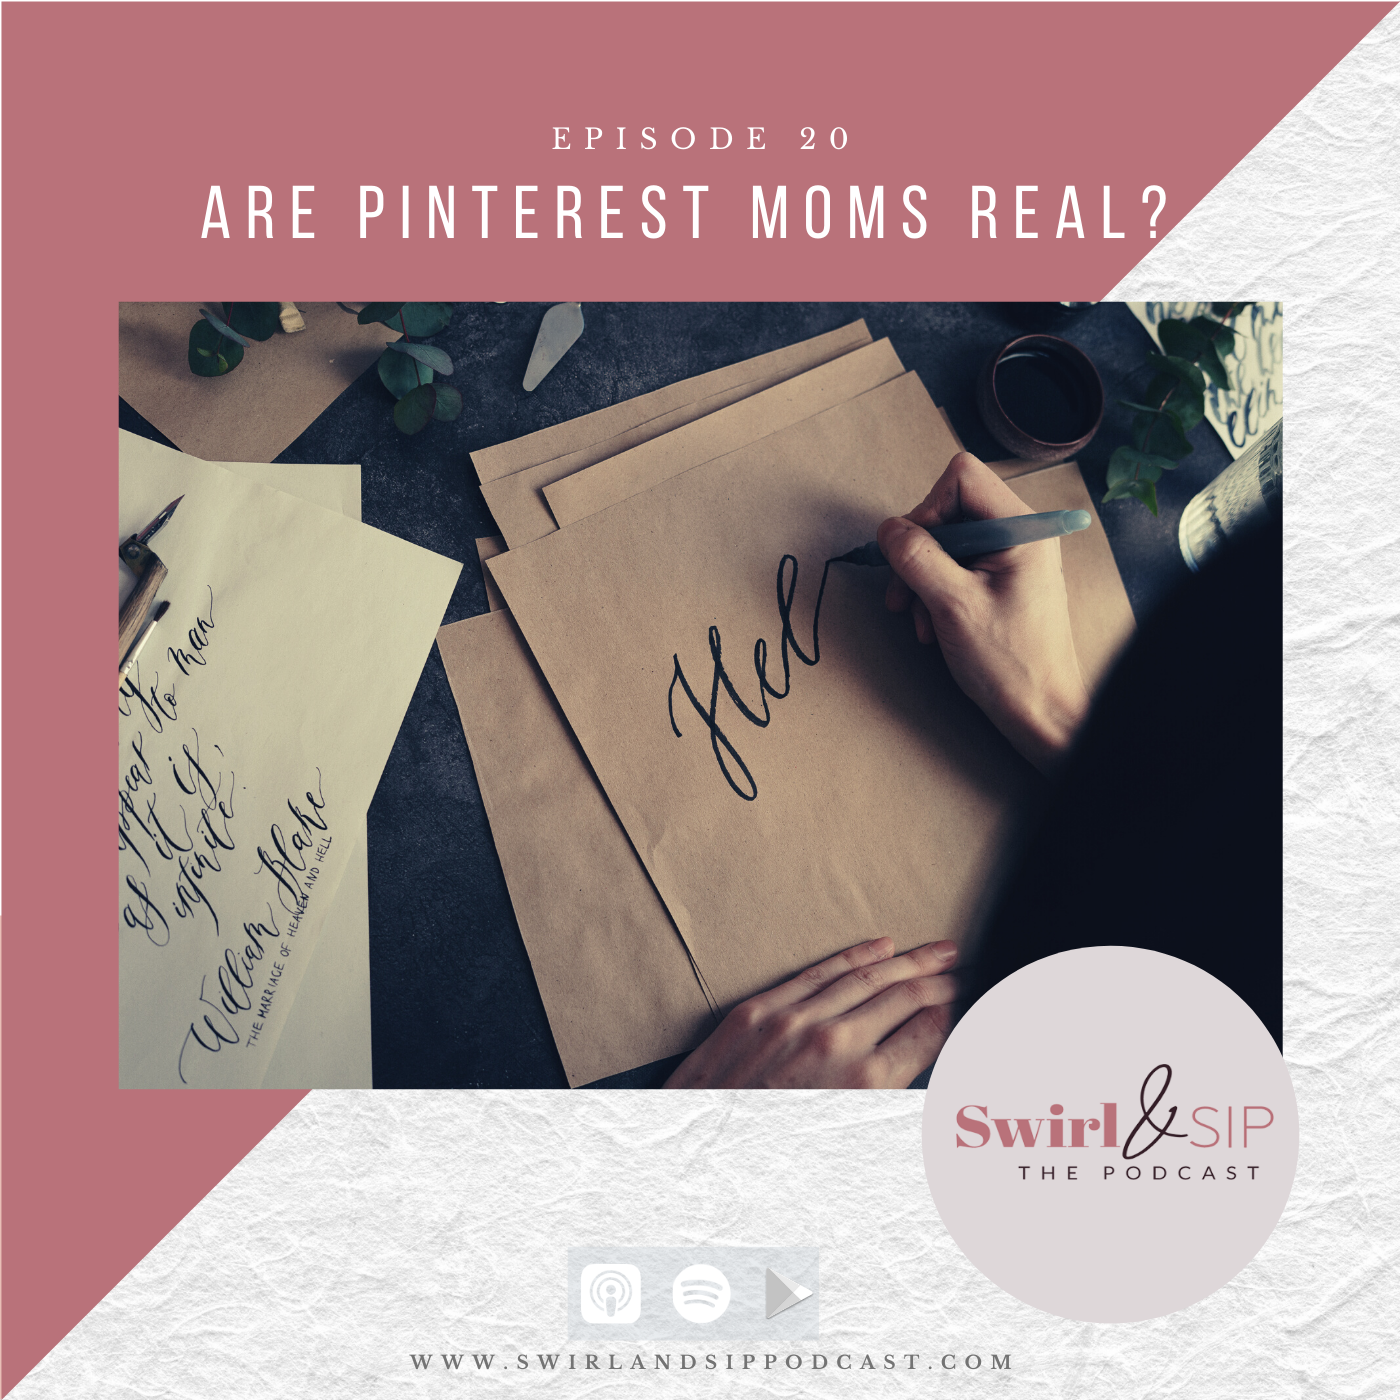 EP 20 - Are Pinterest Moms Real? - Living Up To Our Vision Board Dreams